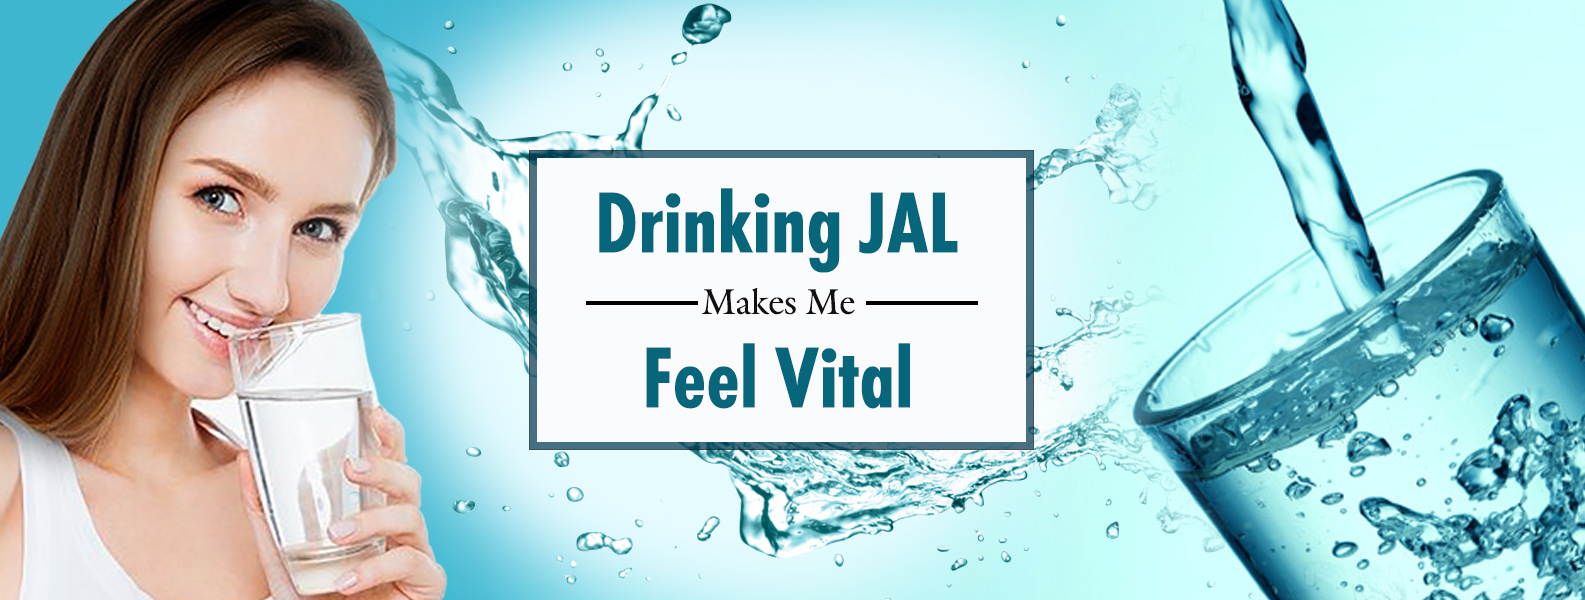 Drinking JAL makes me feel vital.